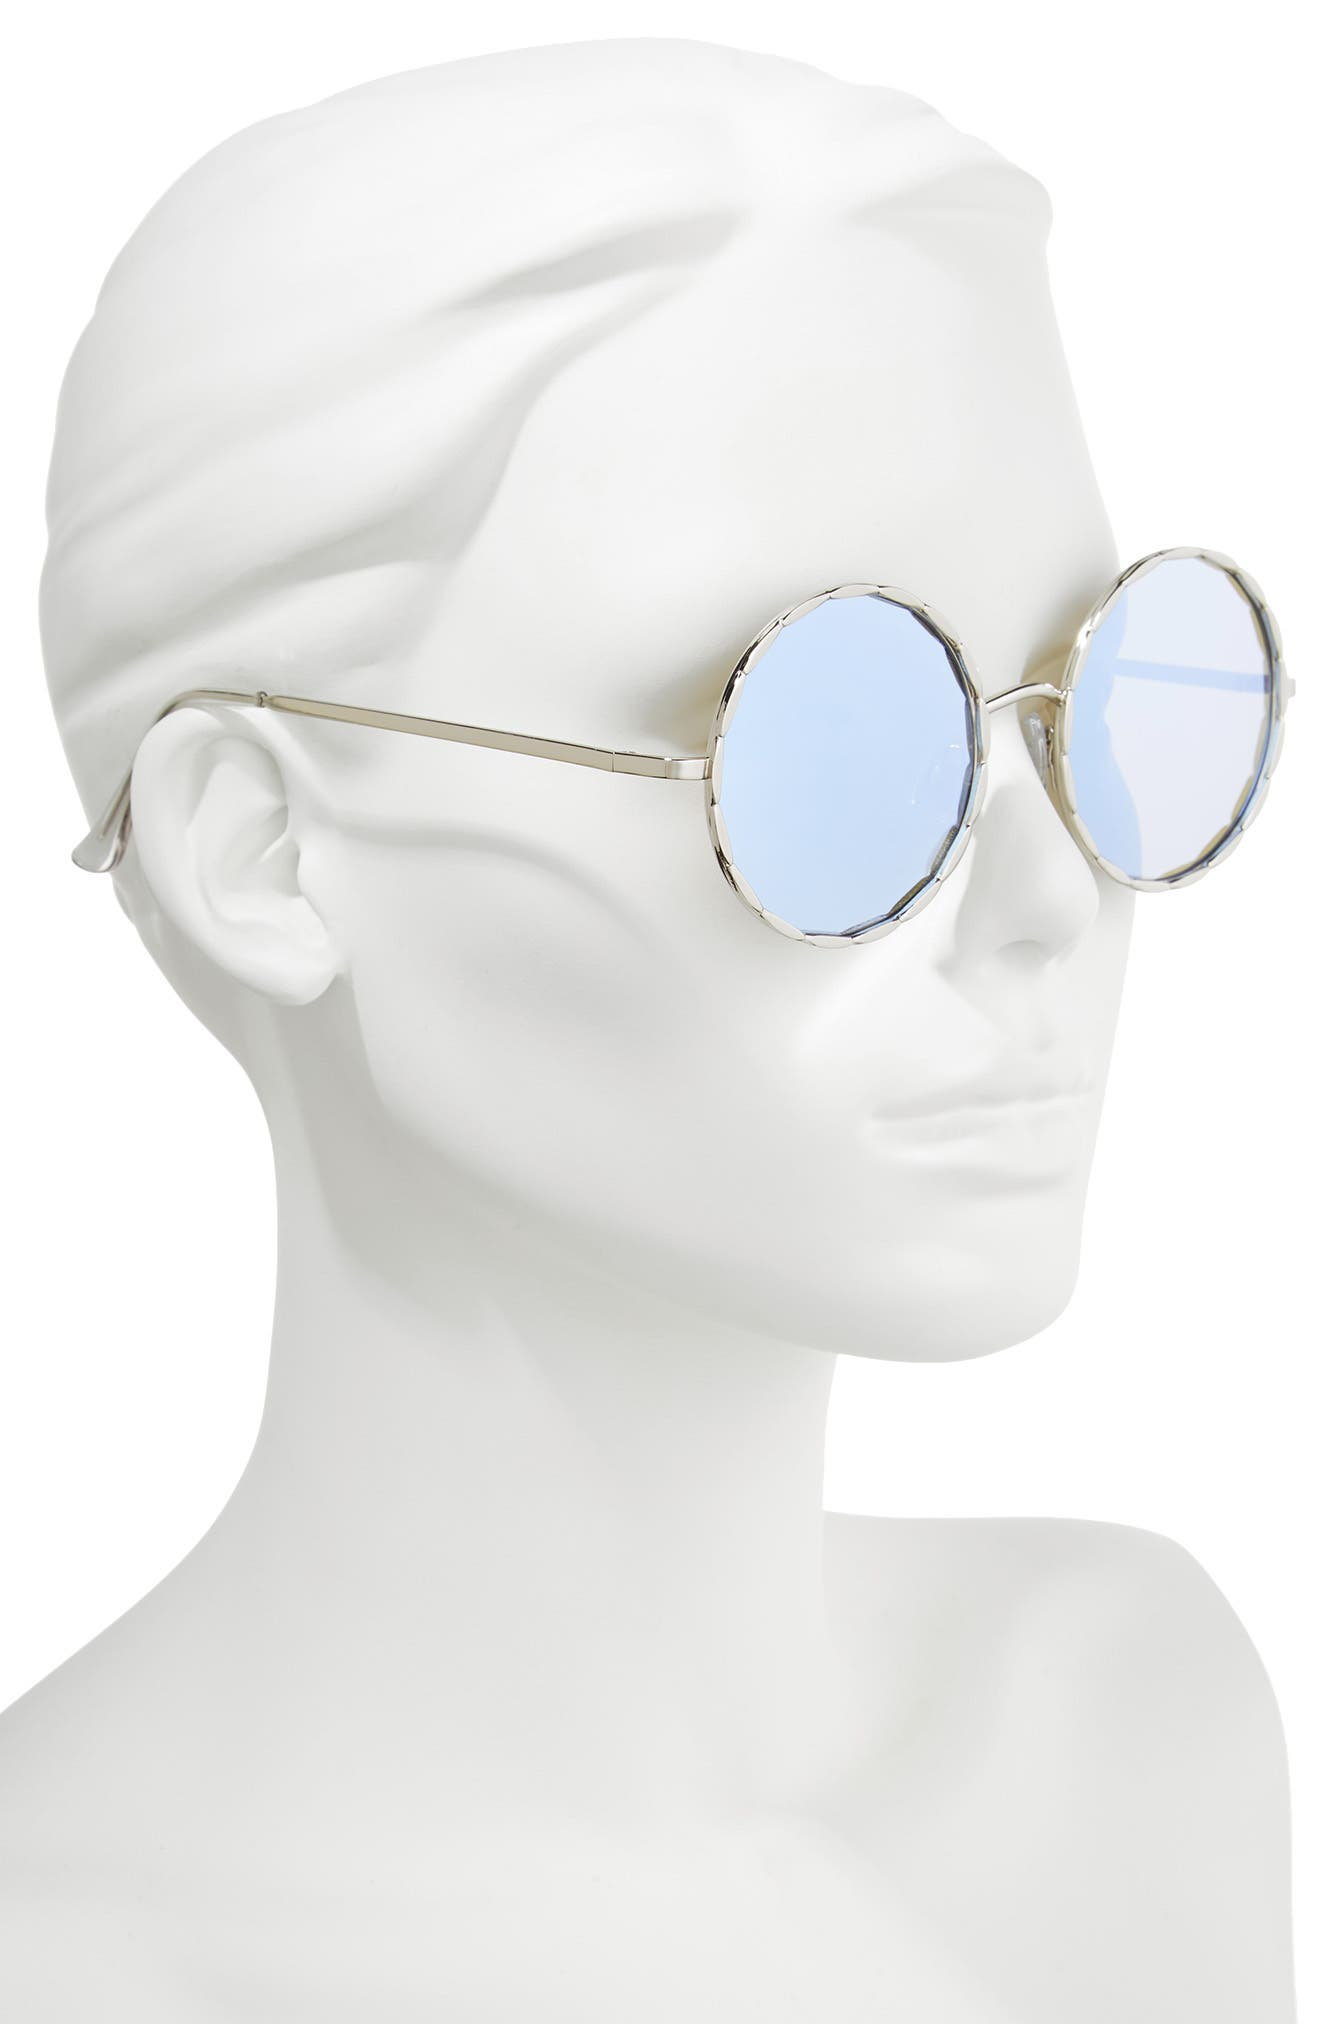 58mm Textured Round Sunglasses,                             Alternate thumbnail 2, color,                             Silver/ Blue